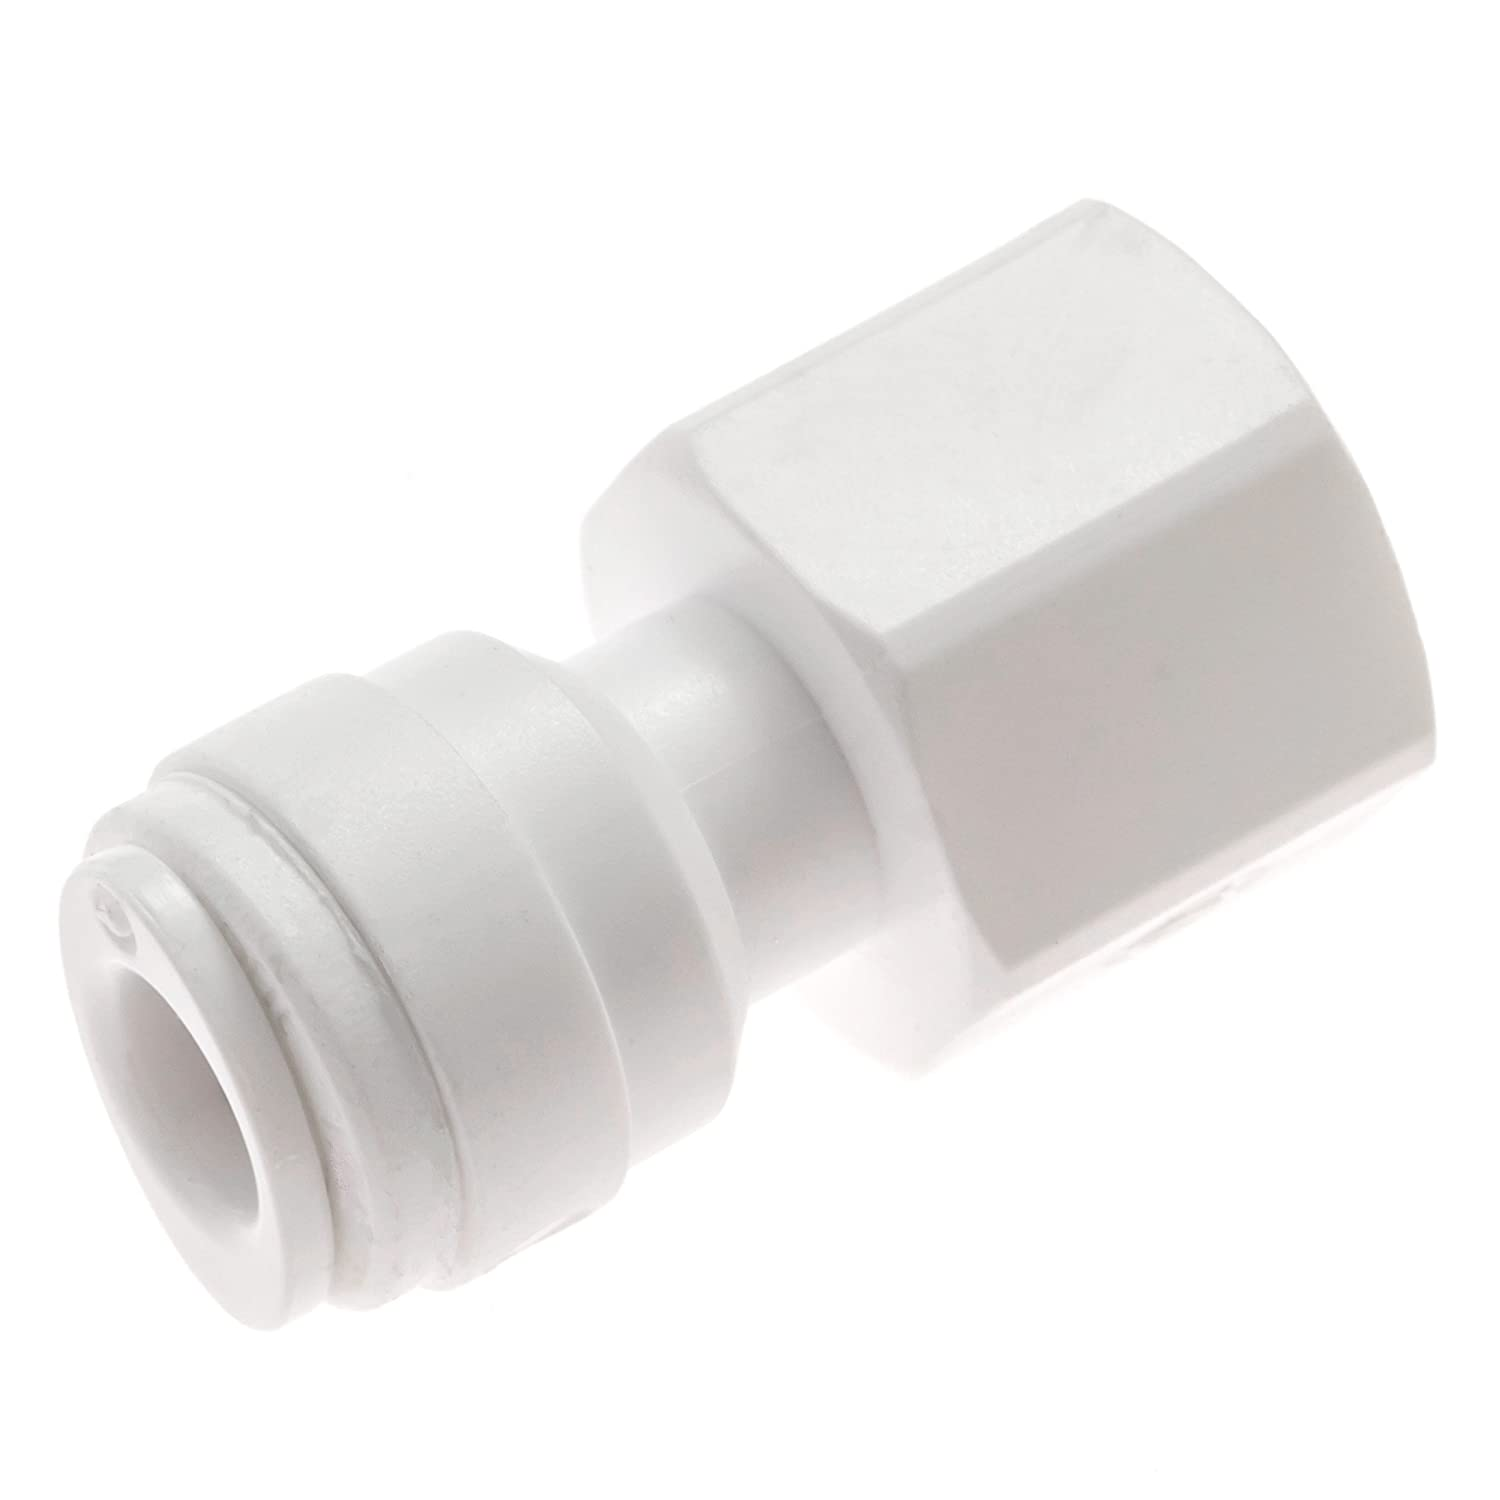 Avanti Membrane Technology Drinking Water Faucet Connector - 1/4 tube OD x 7/16-24 UNS, quick-connect fitting & thread - QF-FF04